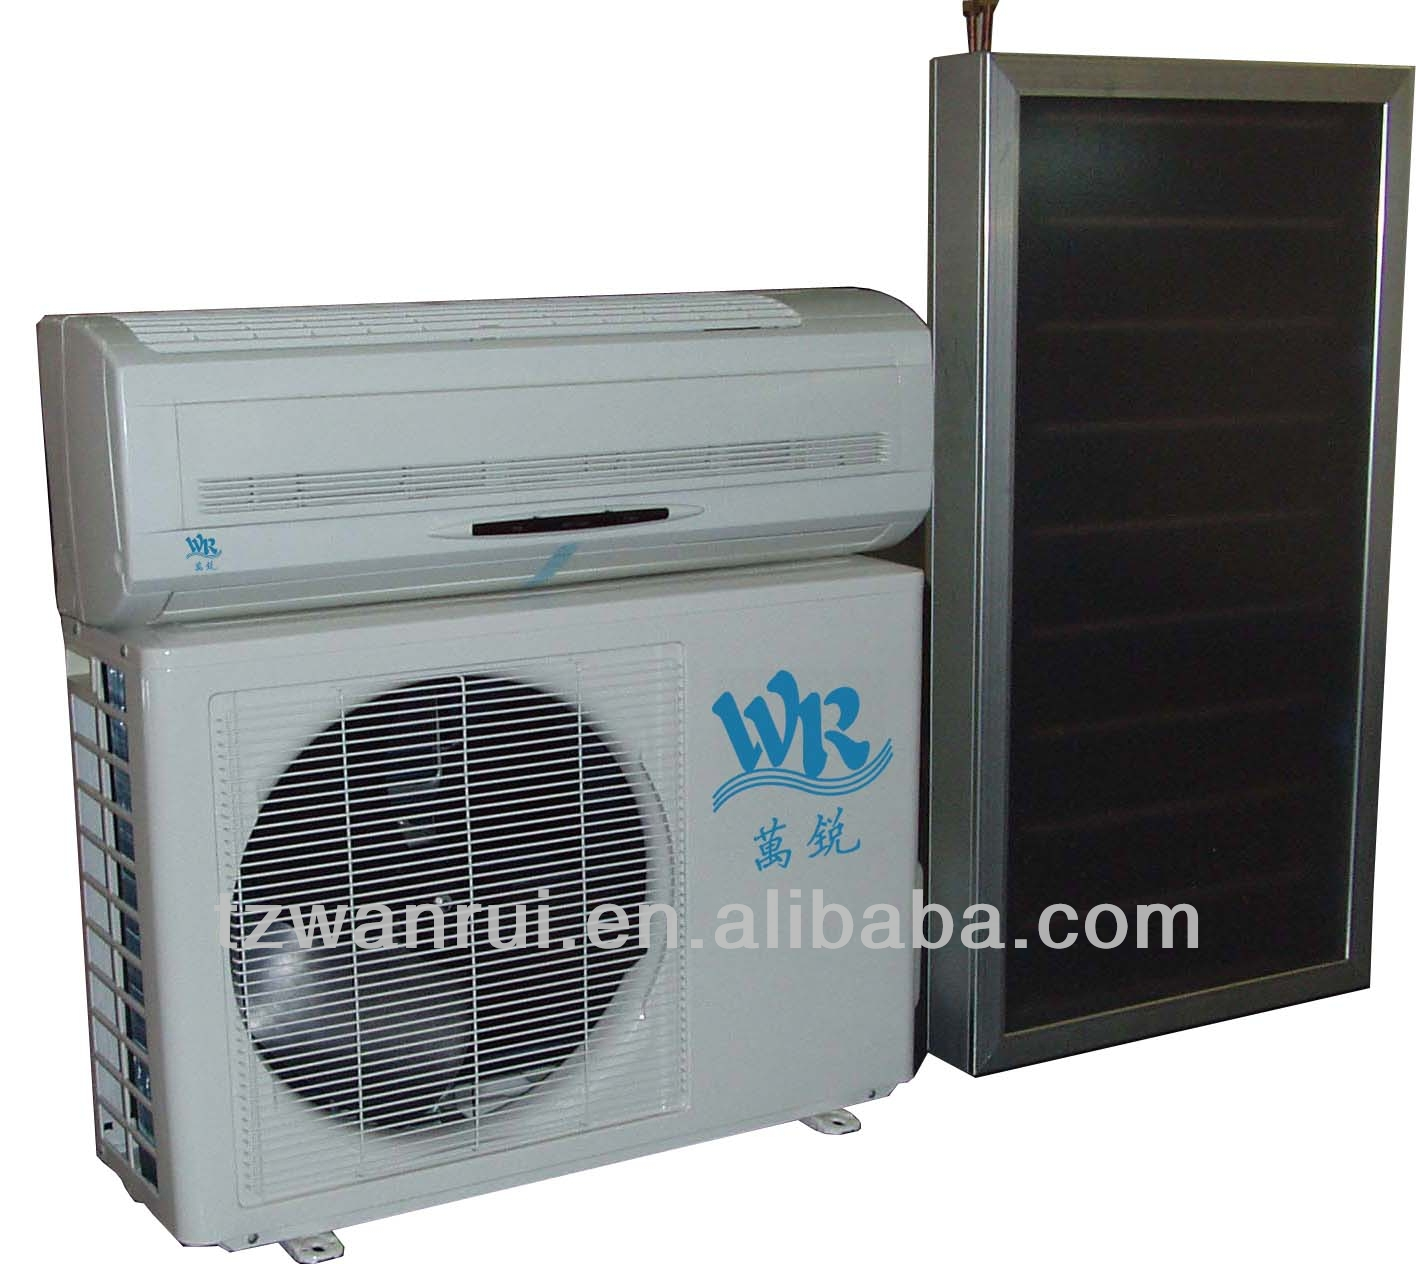 SAA approved DC inverter solar air conditioner